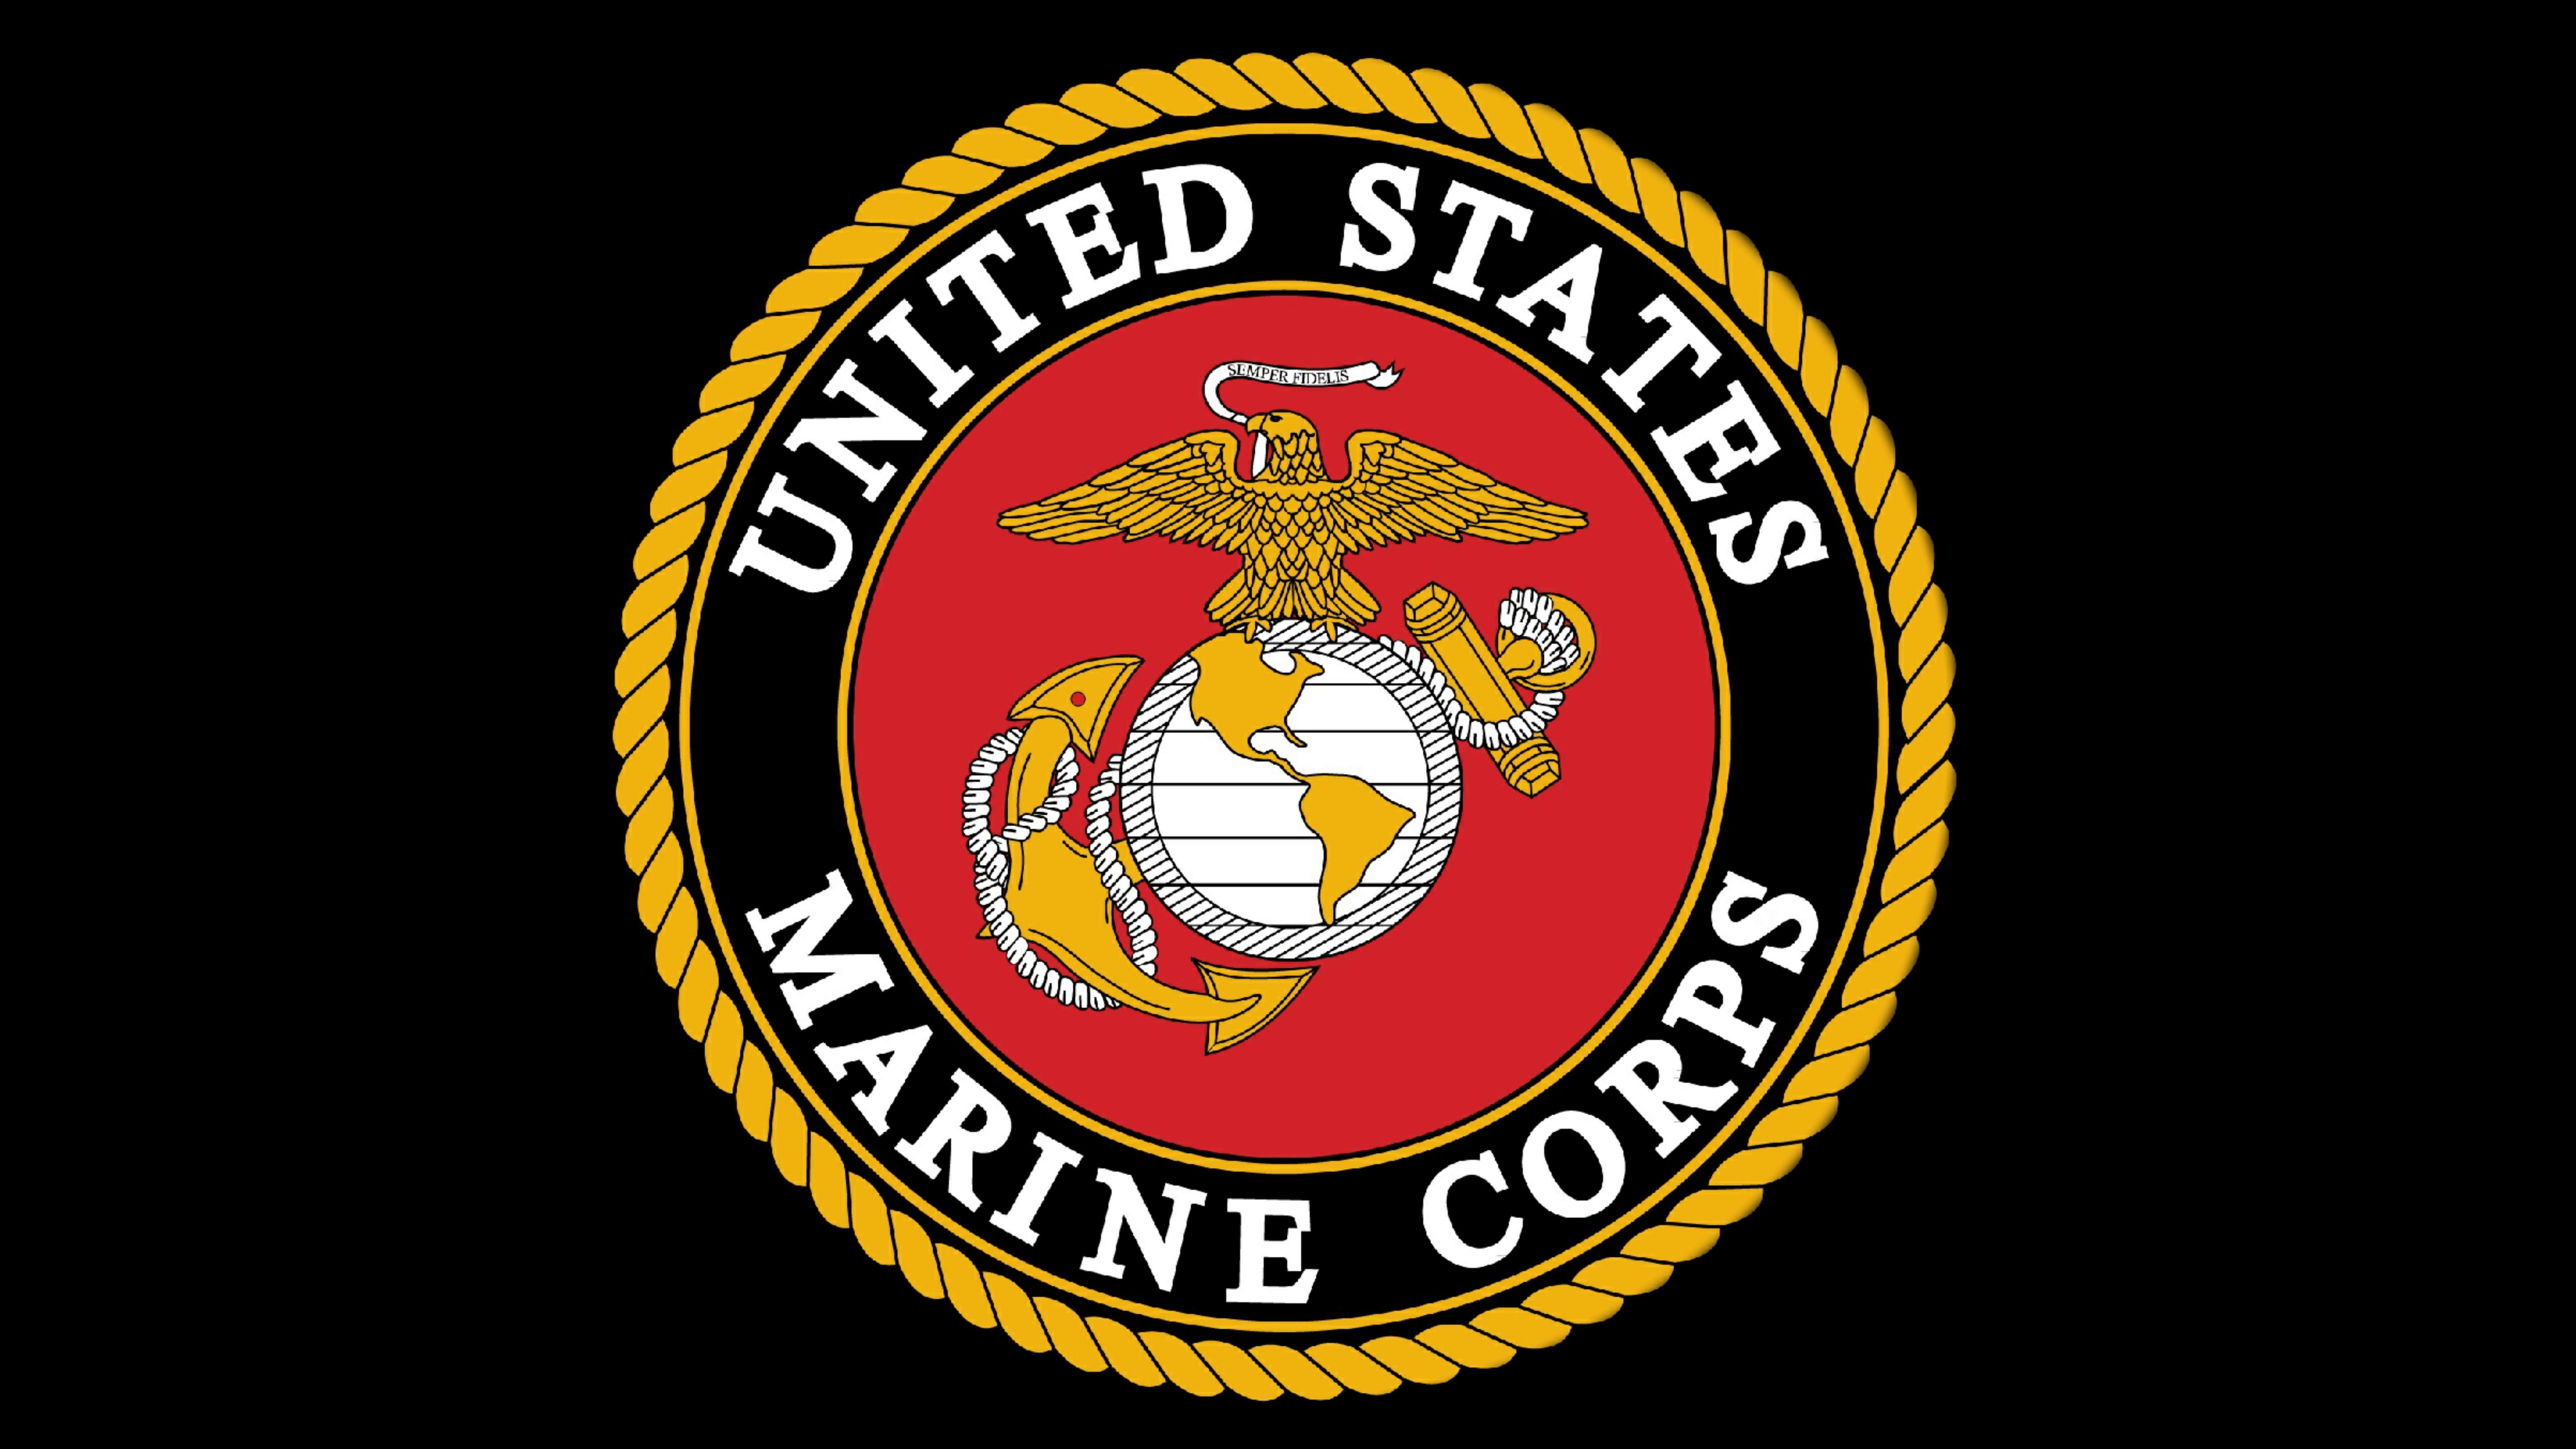 marine corps Looking to find usmc gifts with a personal touch we offer unique personalized marine corps plaques and gifts.